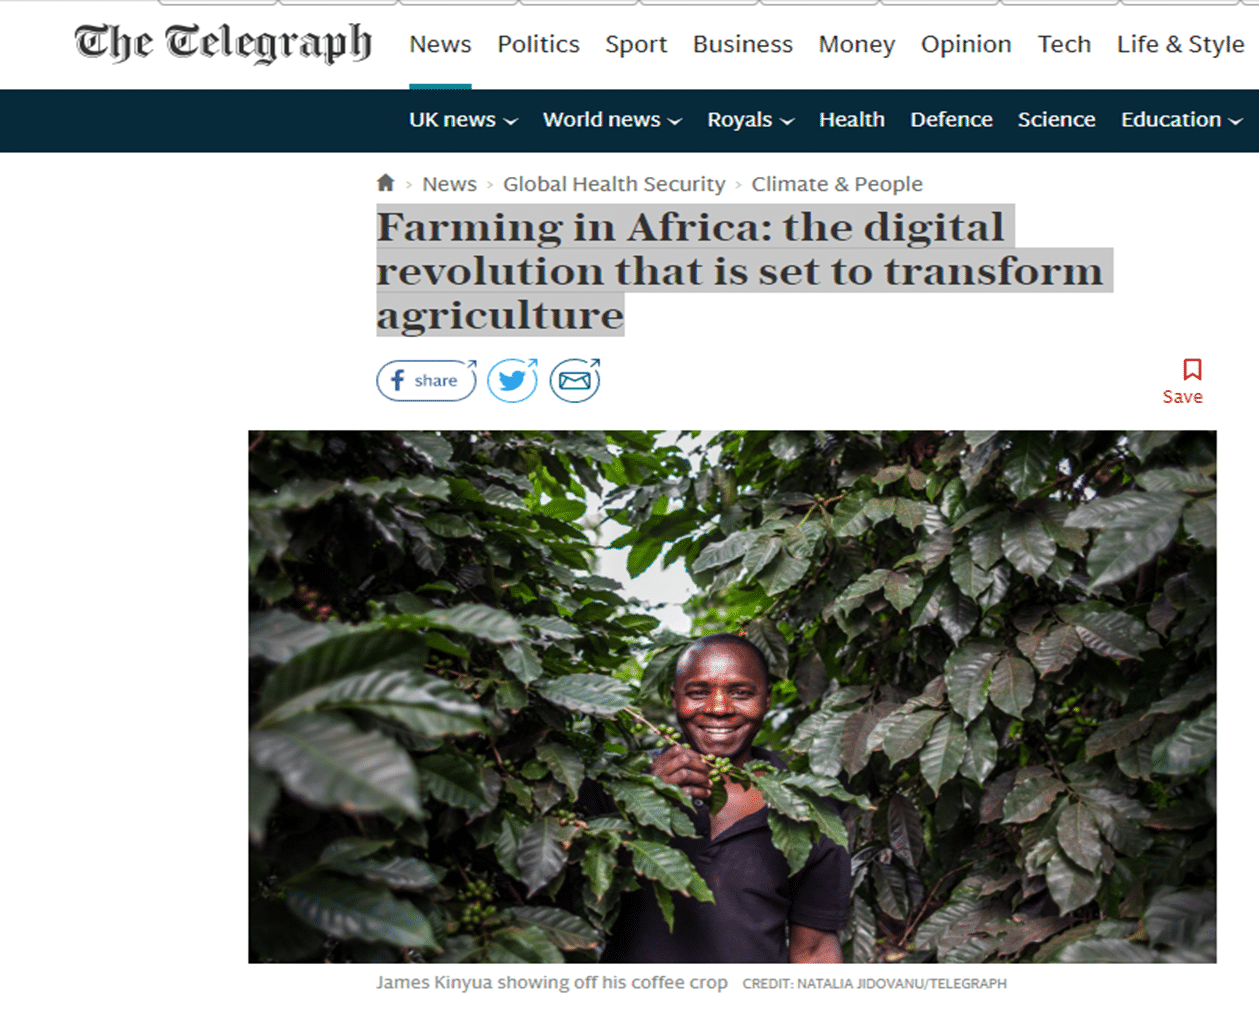 Article - Farming in Africa: the digital revolution that is set to transform agriculture